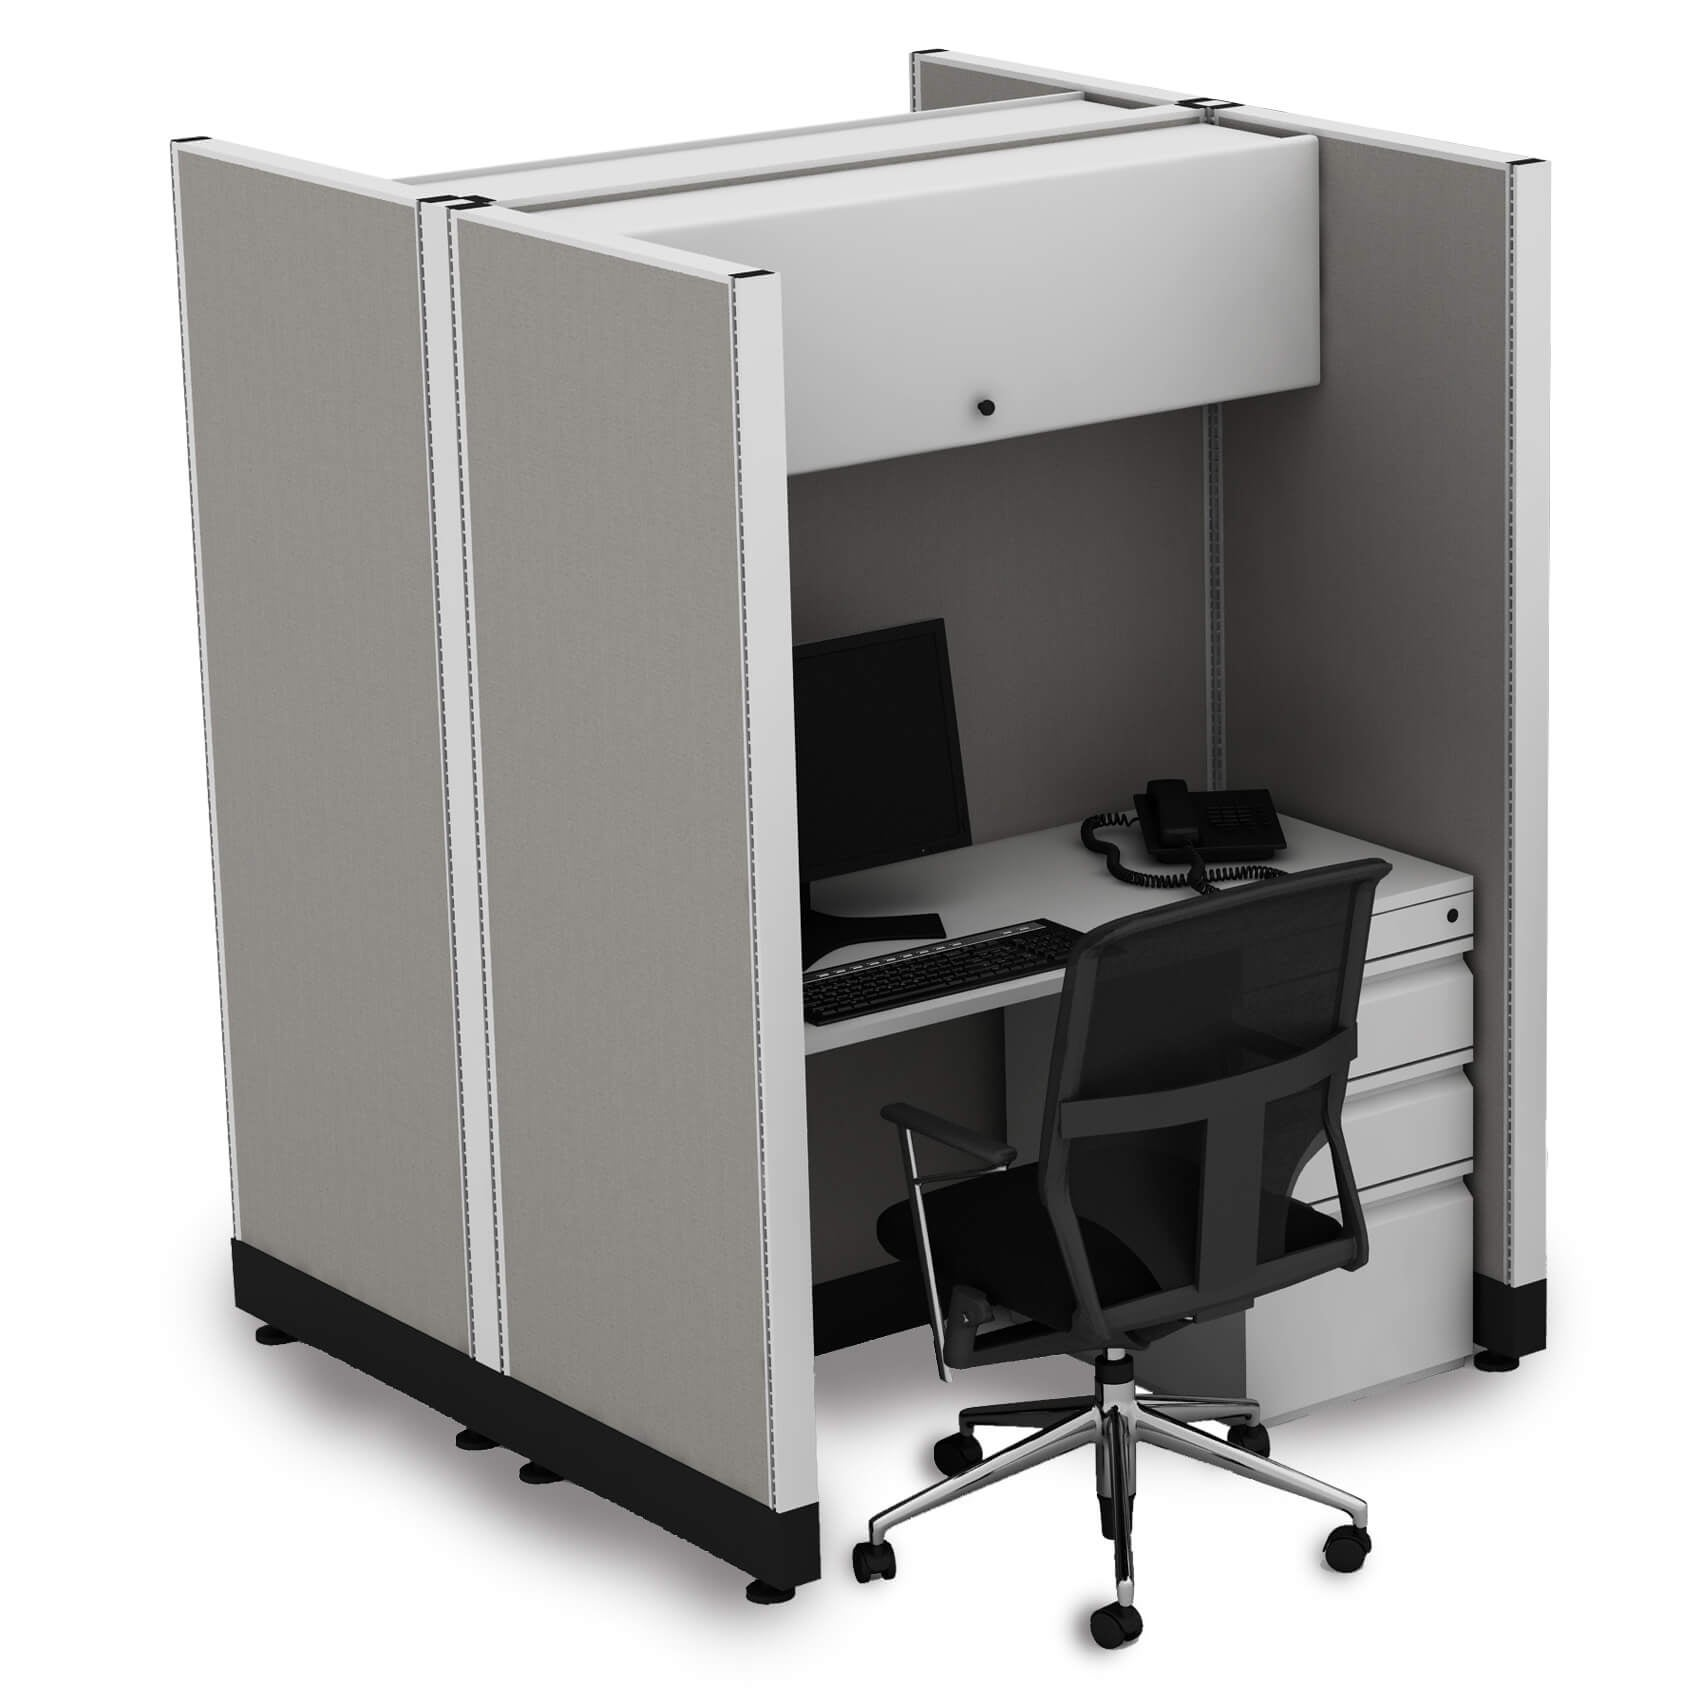 Hoteling Stations 67H 2pack Cluster Powered (2x3 - White Desk White Paint - Assembly Required)